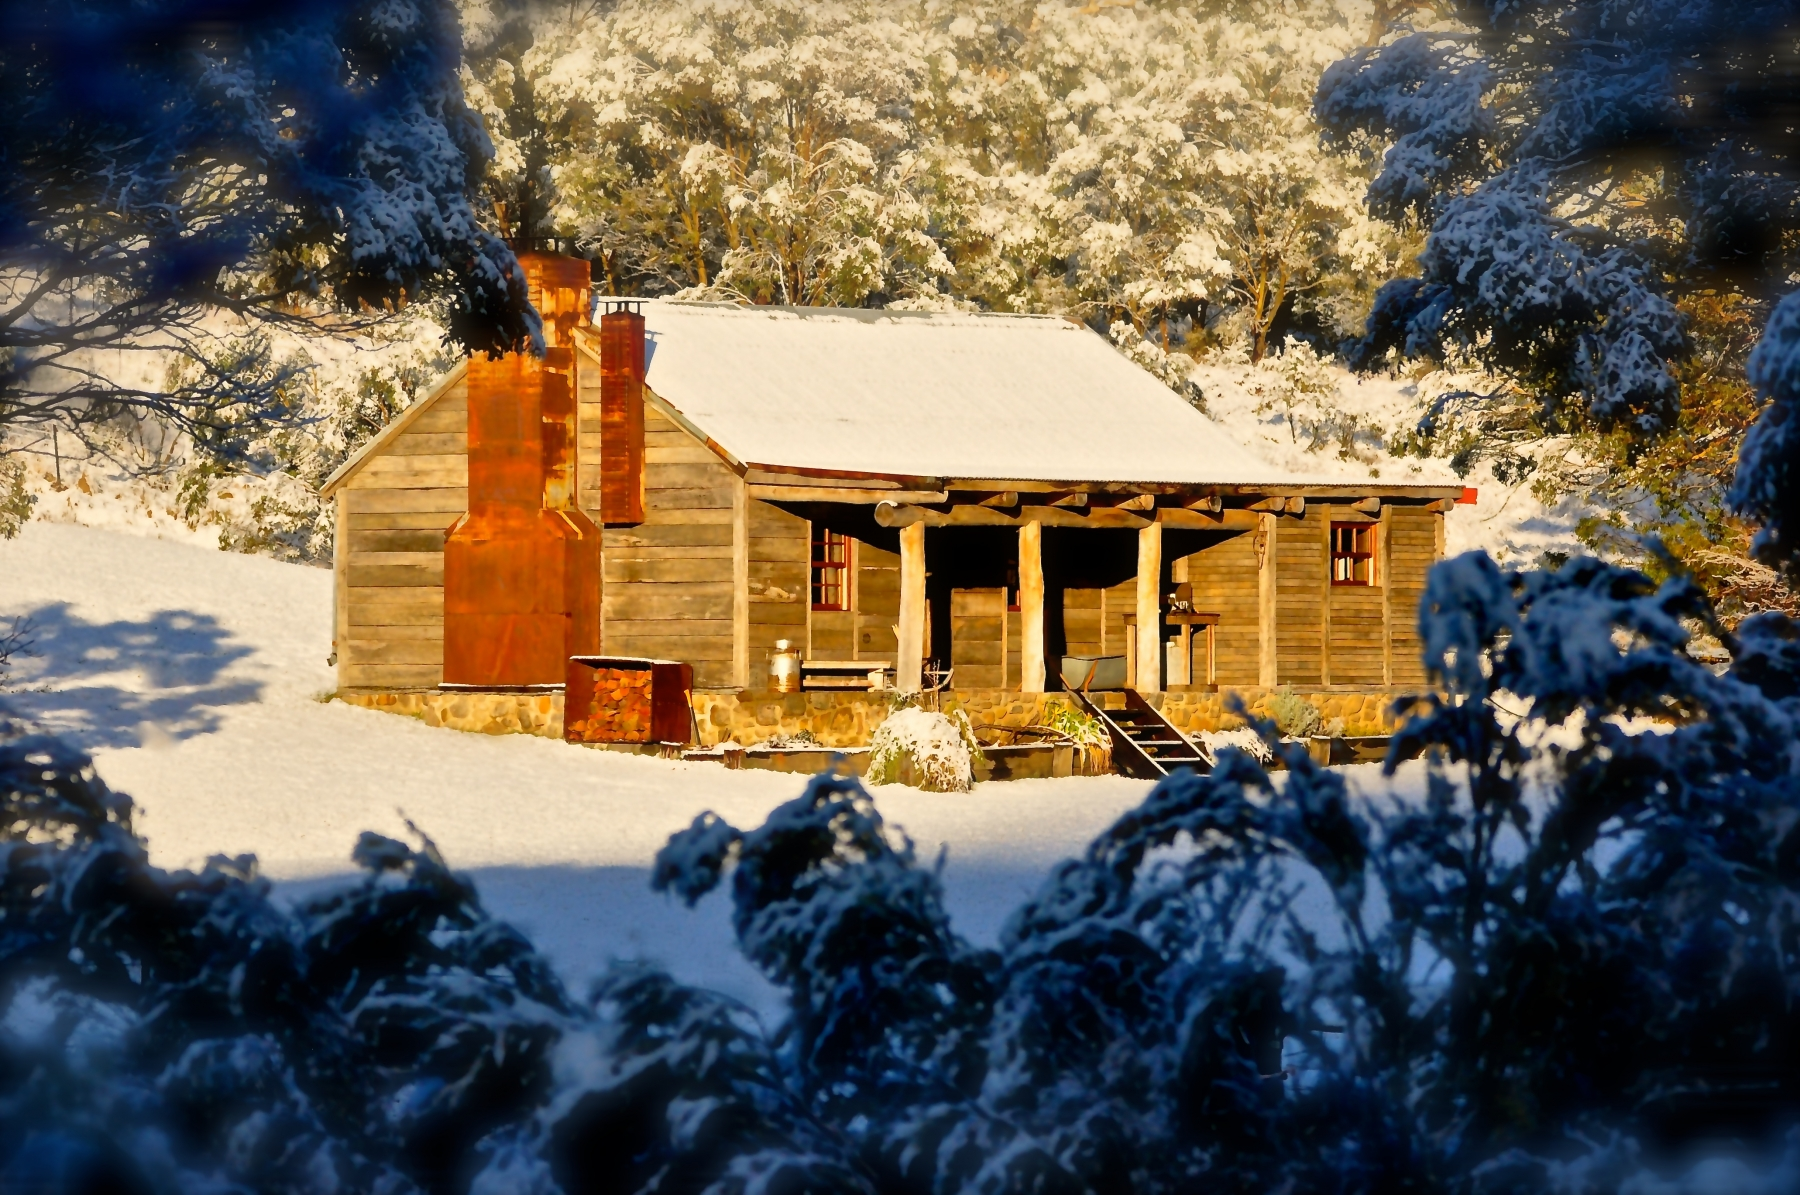 Deep Winter Snow at Moonbah River Hut